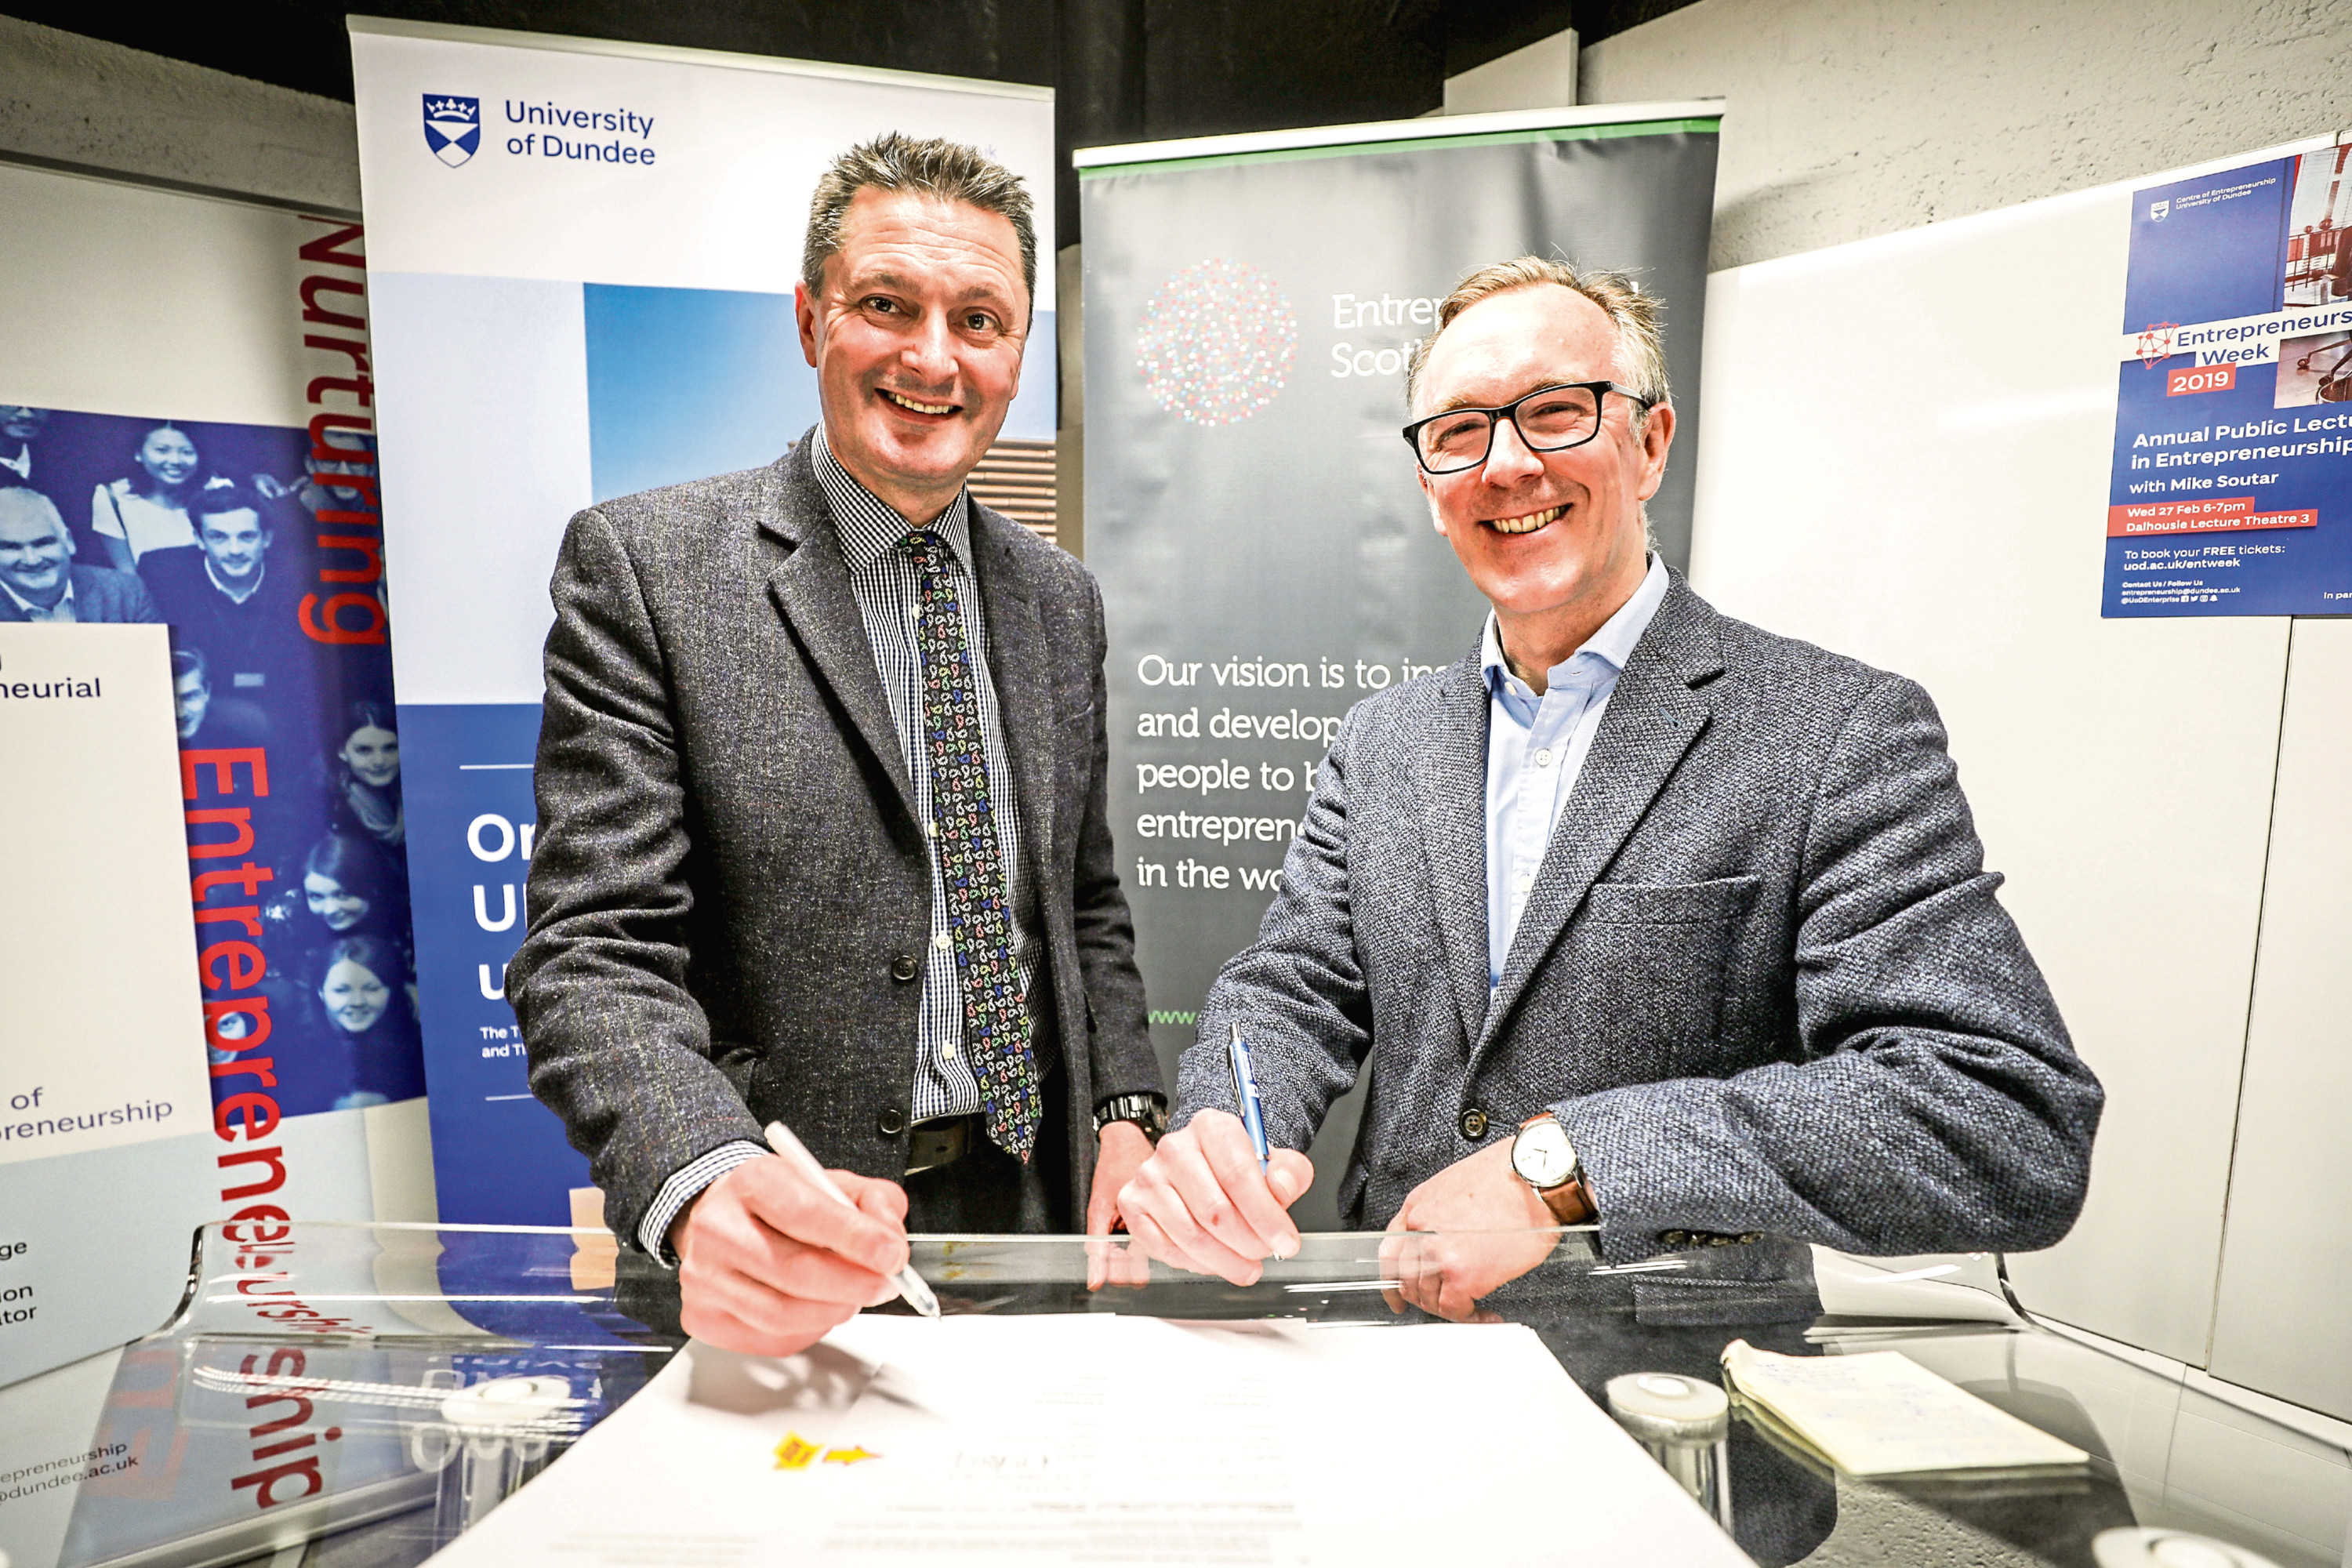 University of Dundee principal Andrew Atherton with Sandy Kennedy, chief executive of Entrepreneurial Scotland in February.